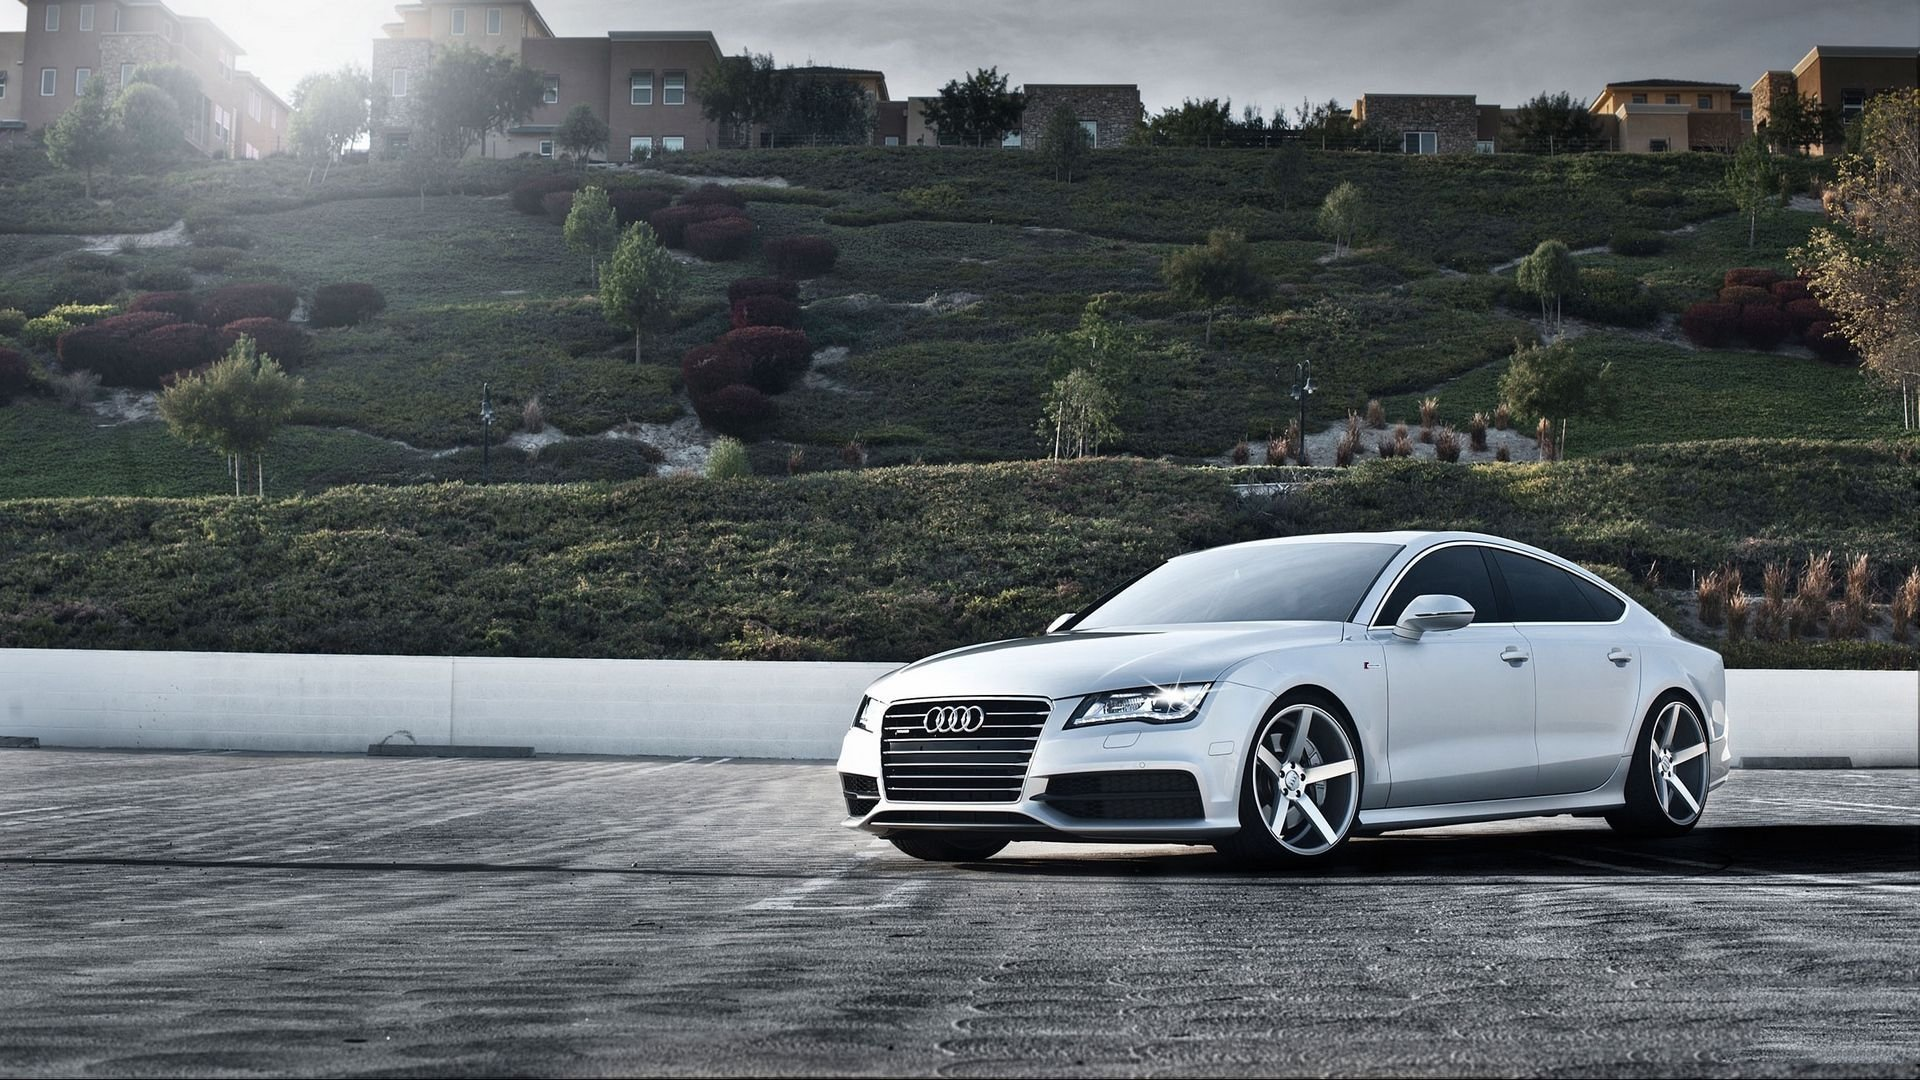 Latest Tag For Audi Benz 1080P City Car Driving 1 5 3 Audi Rs6 Free Download